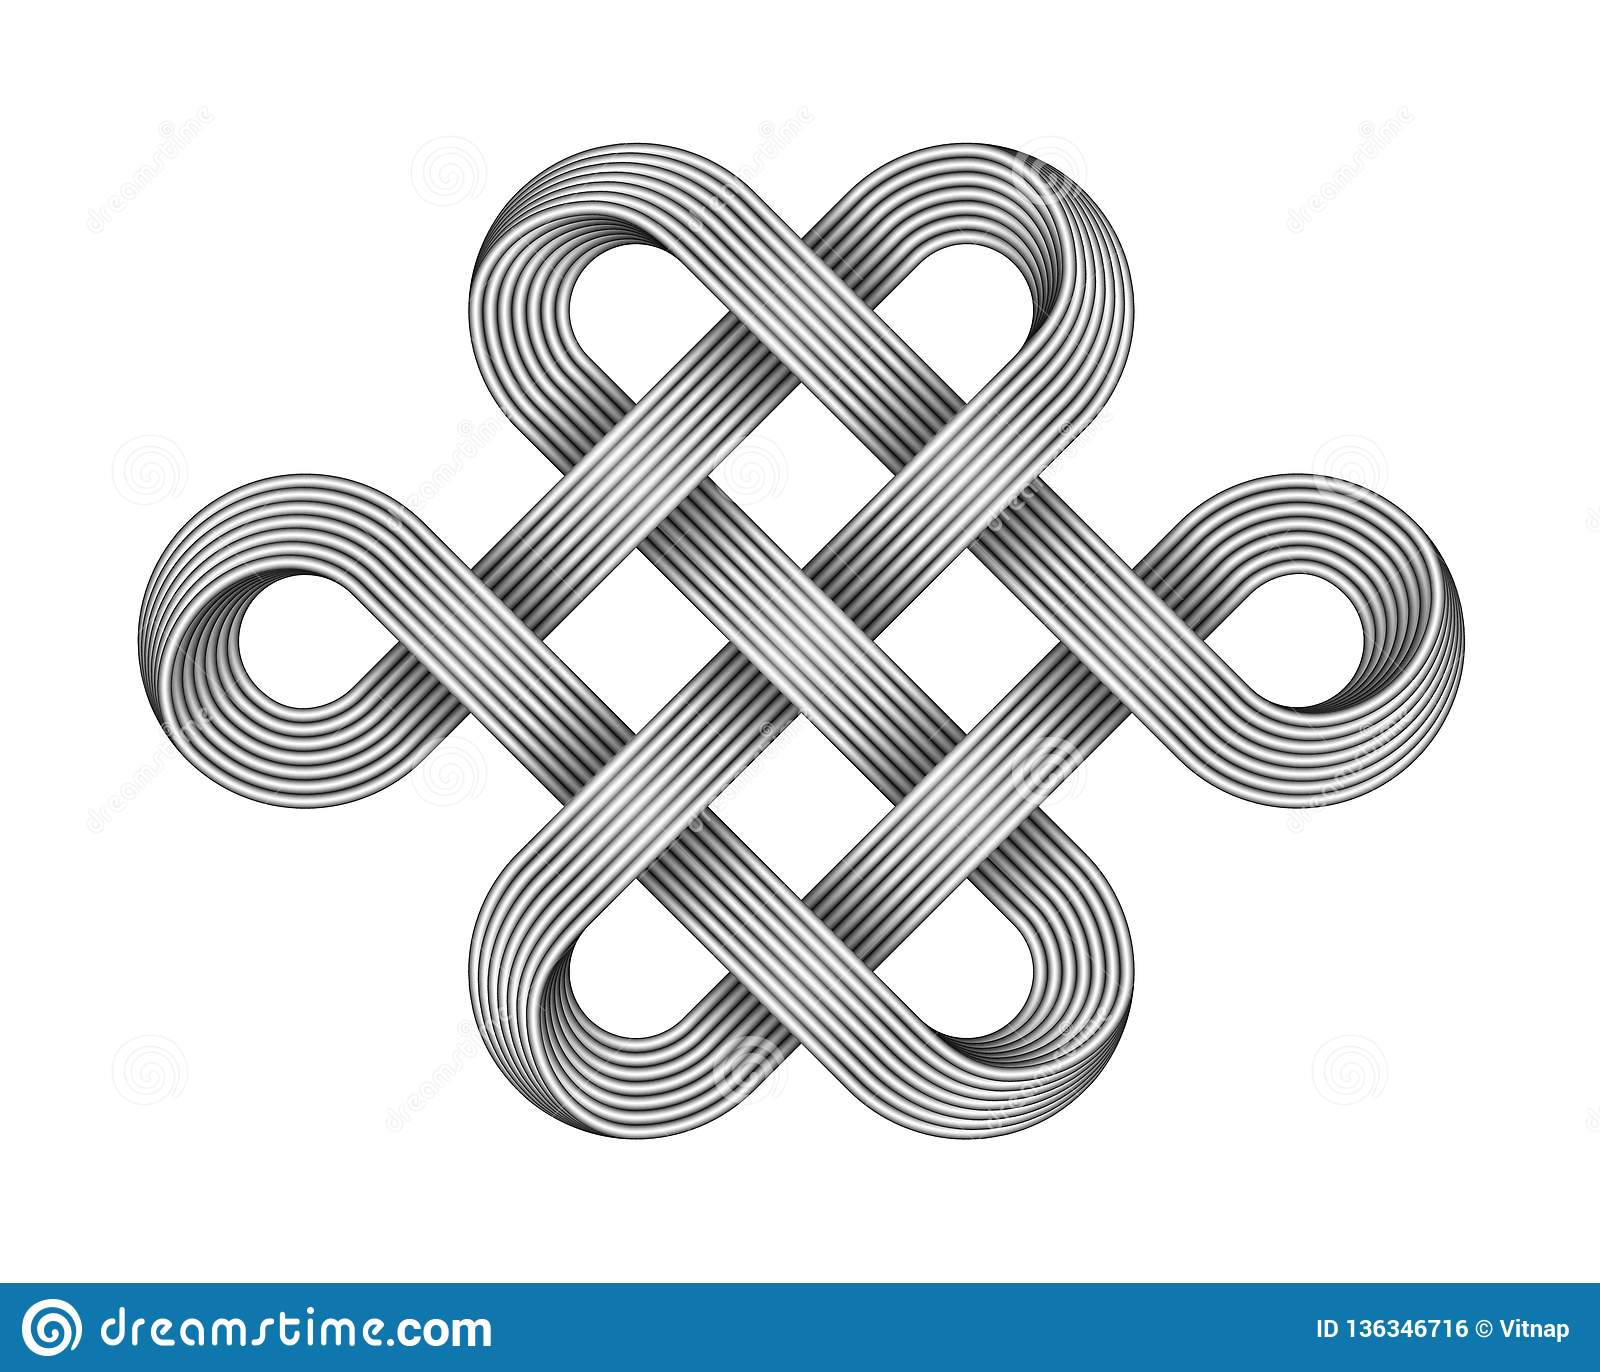 aa3a270d7 Endless knot made of crossed metal wires. Buddhist symbol. Vector  illustration